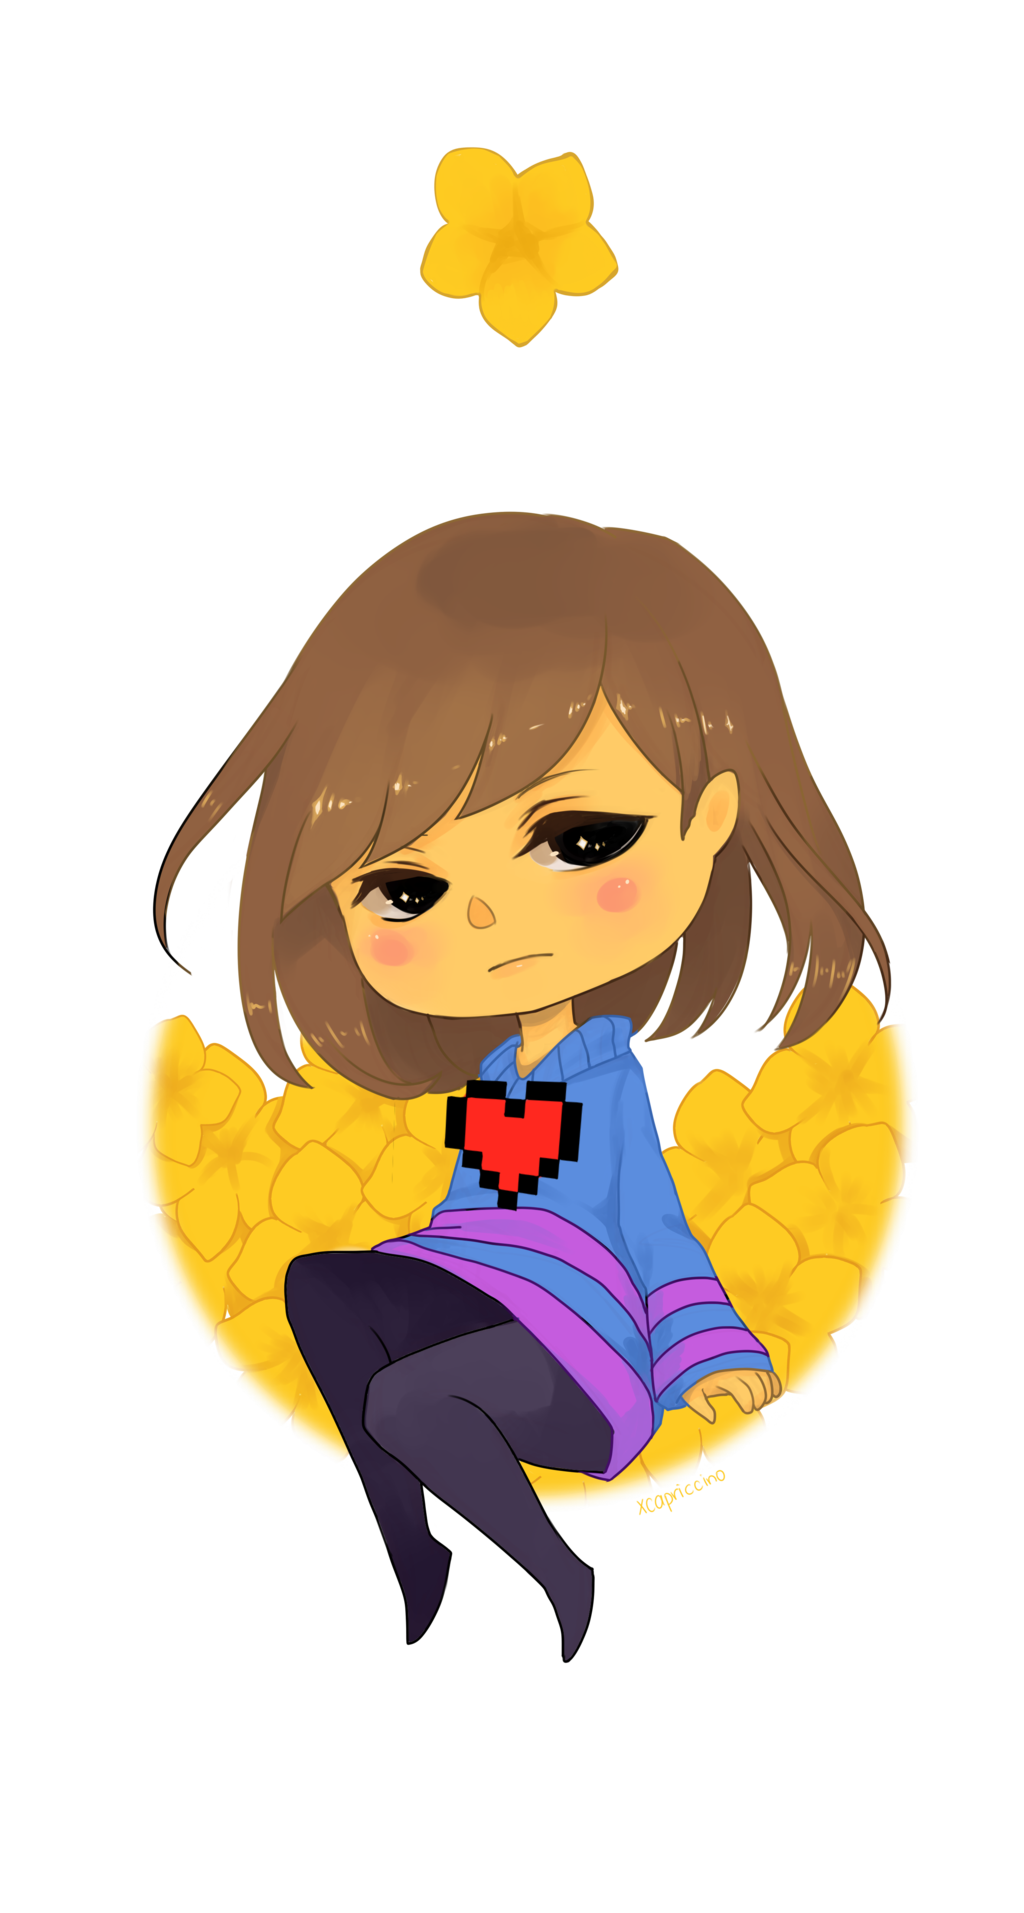 Undertale frisk png. By xcapriccino on deviantart